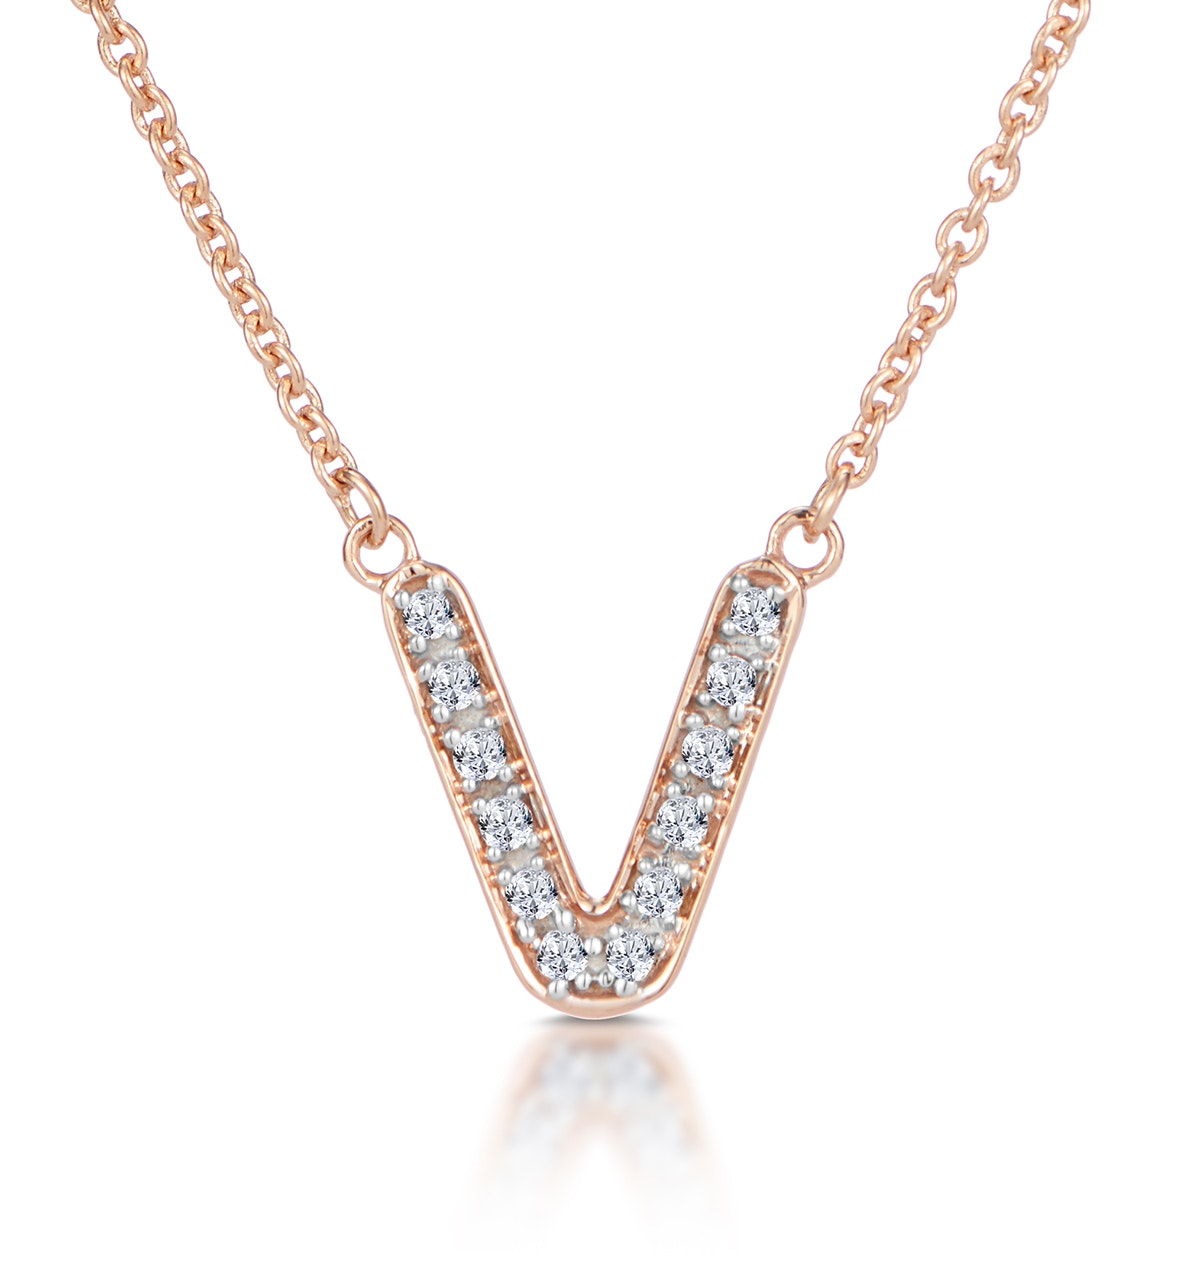 Initial 'V' Necklace Diamond Encrusted Pave Set in 9K Rose Gold